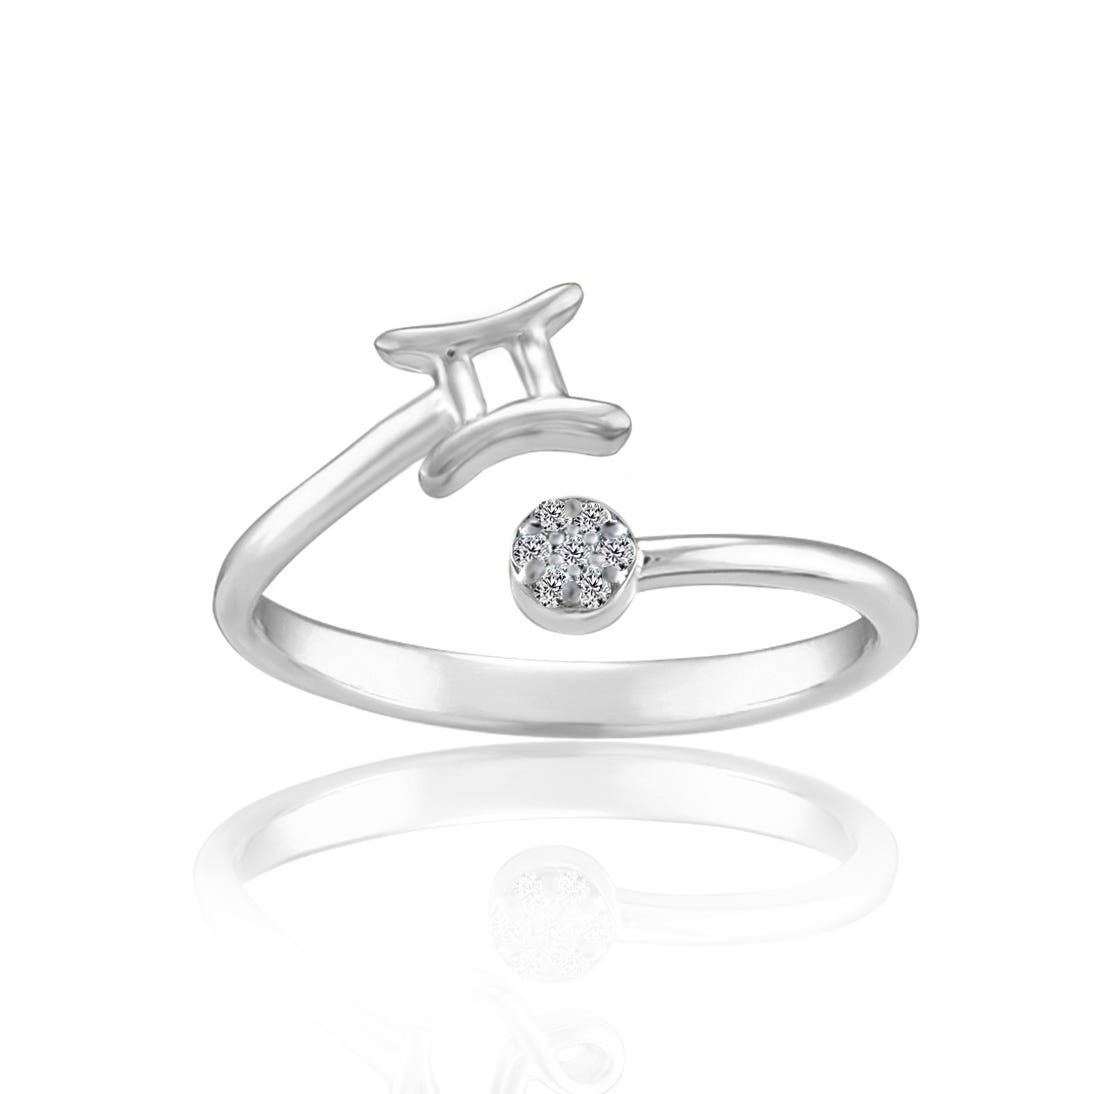 Zodiac Gemini Fashion Ring in Sterling Silver